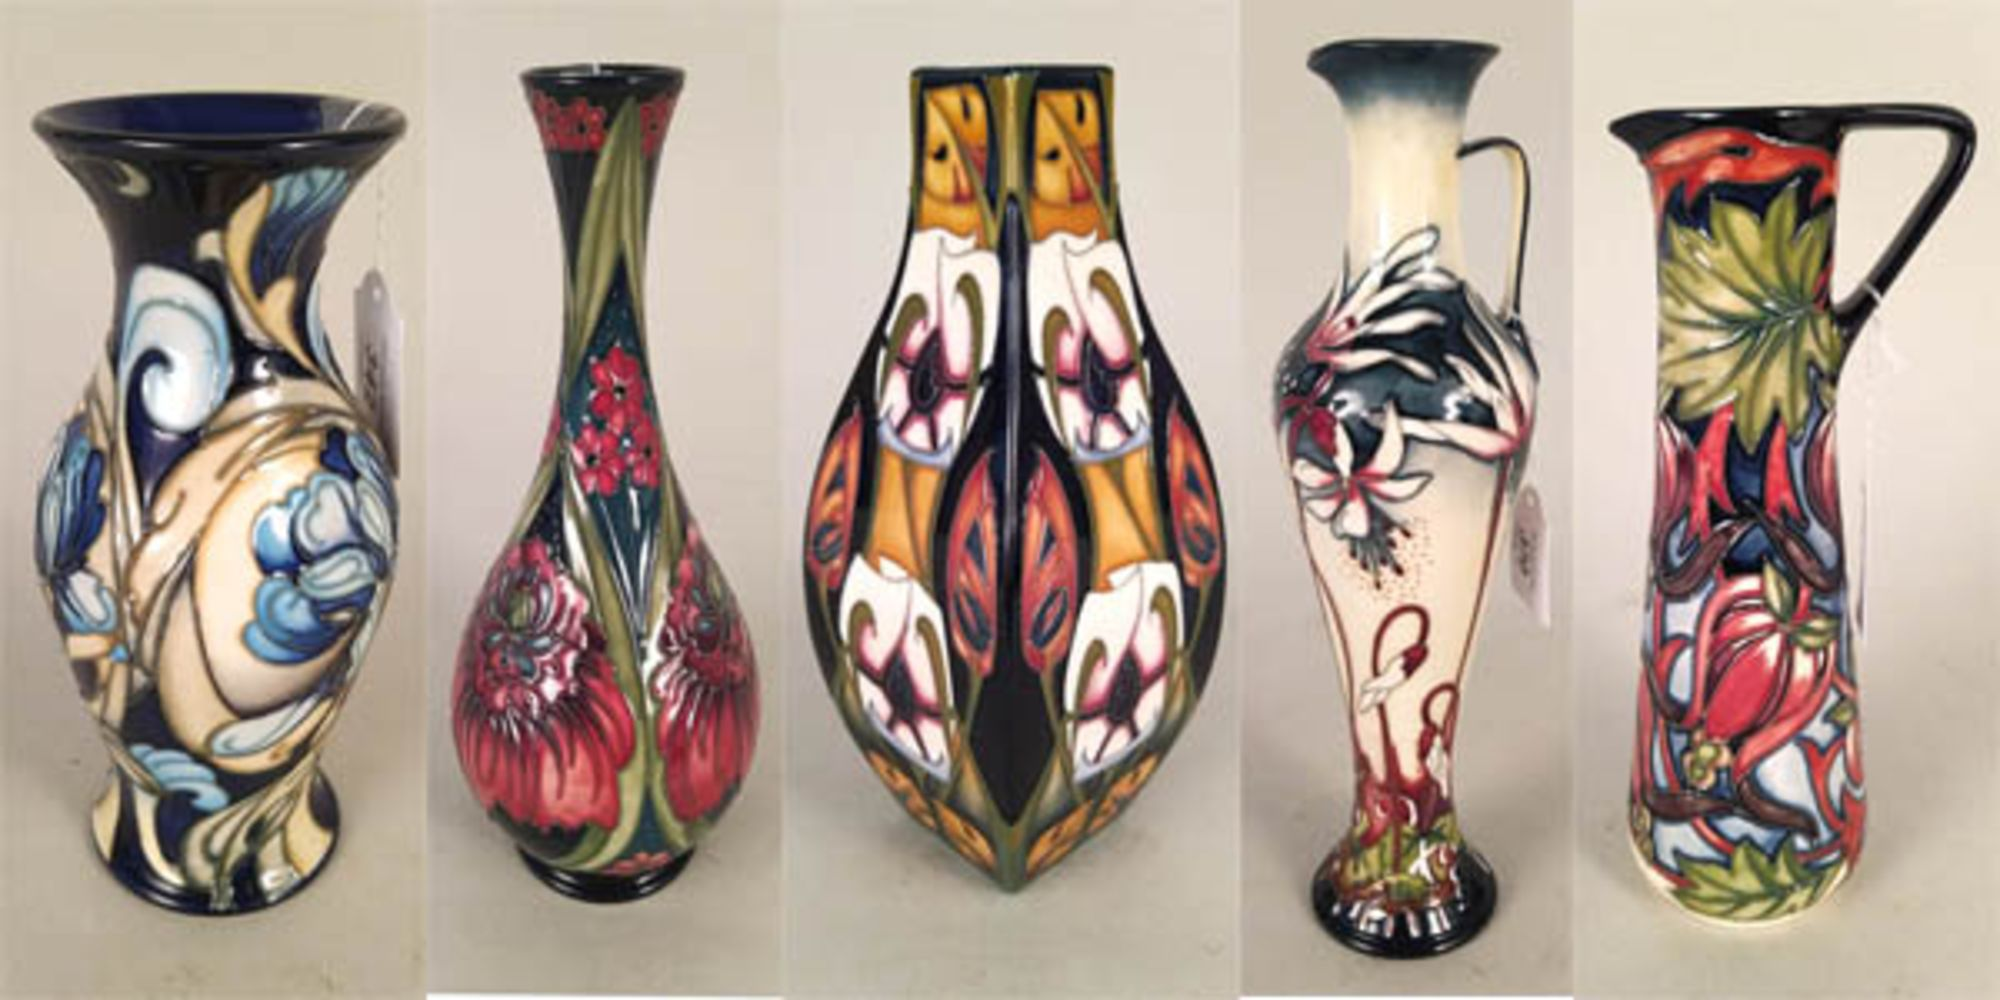 A Private Collection of Moorcroft and Fine Art including Raymond Watson